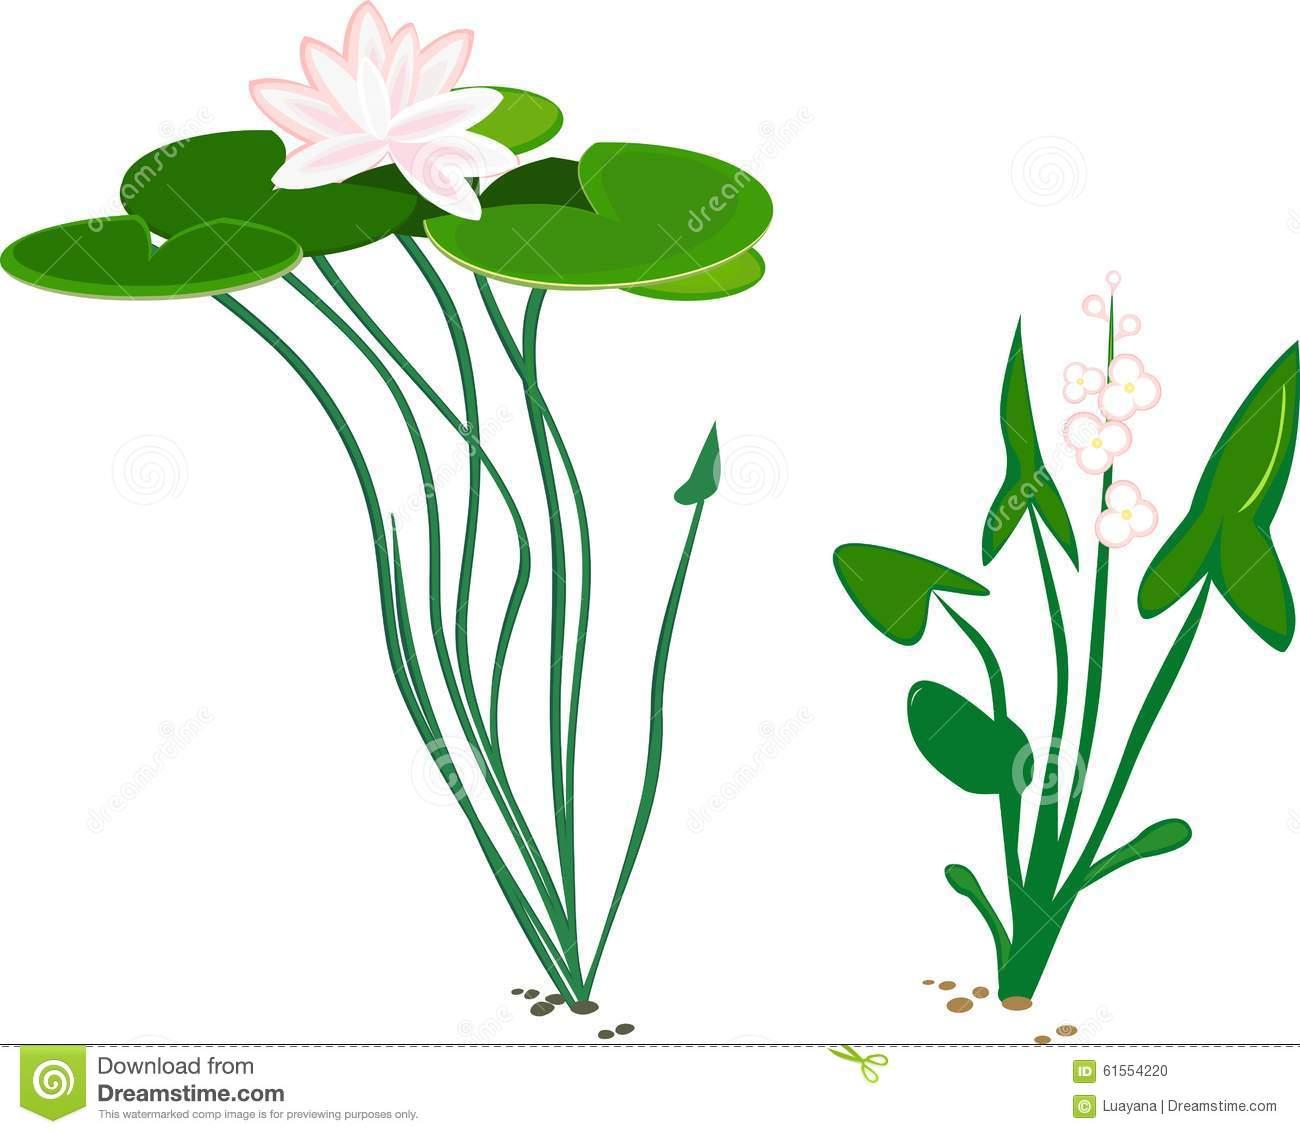 Water plant duck potato and water lily stock vector illustration water plant duck potato and water lily izmirmasajfo